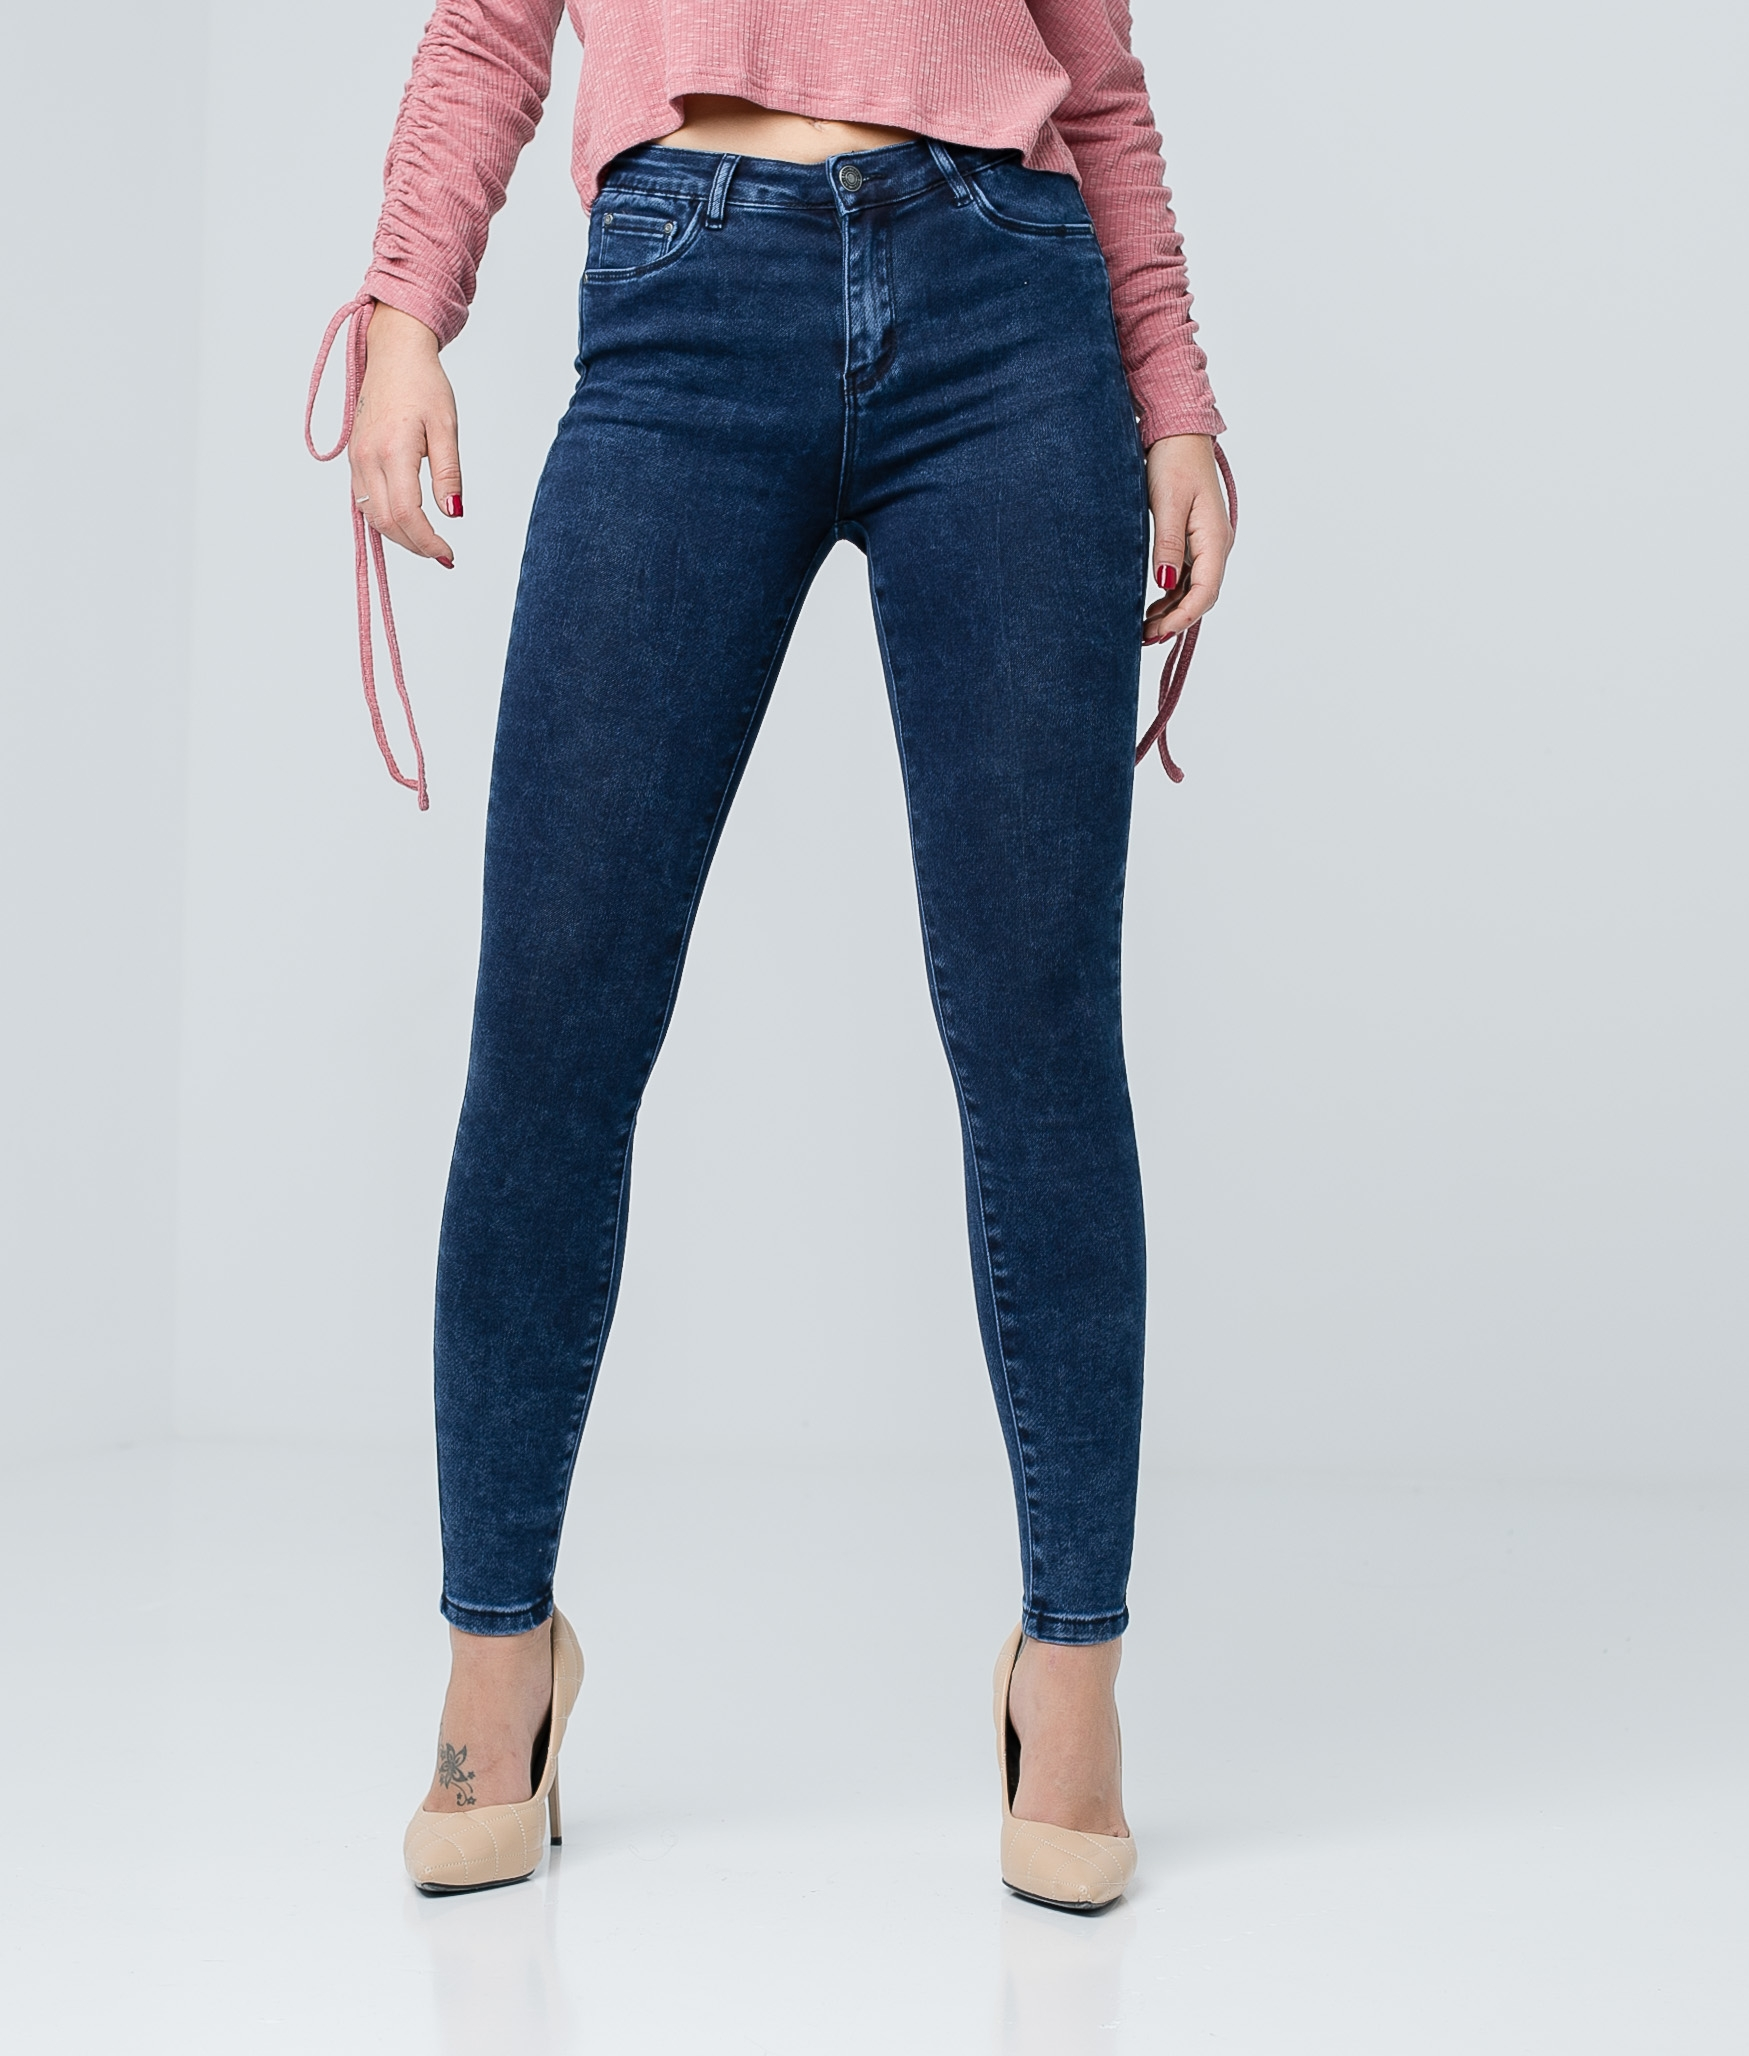 Pantalon Jaia - Denim